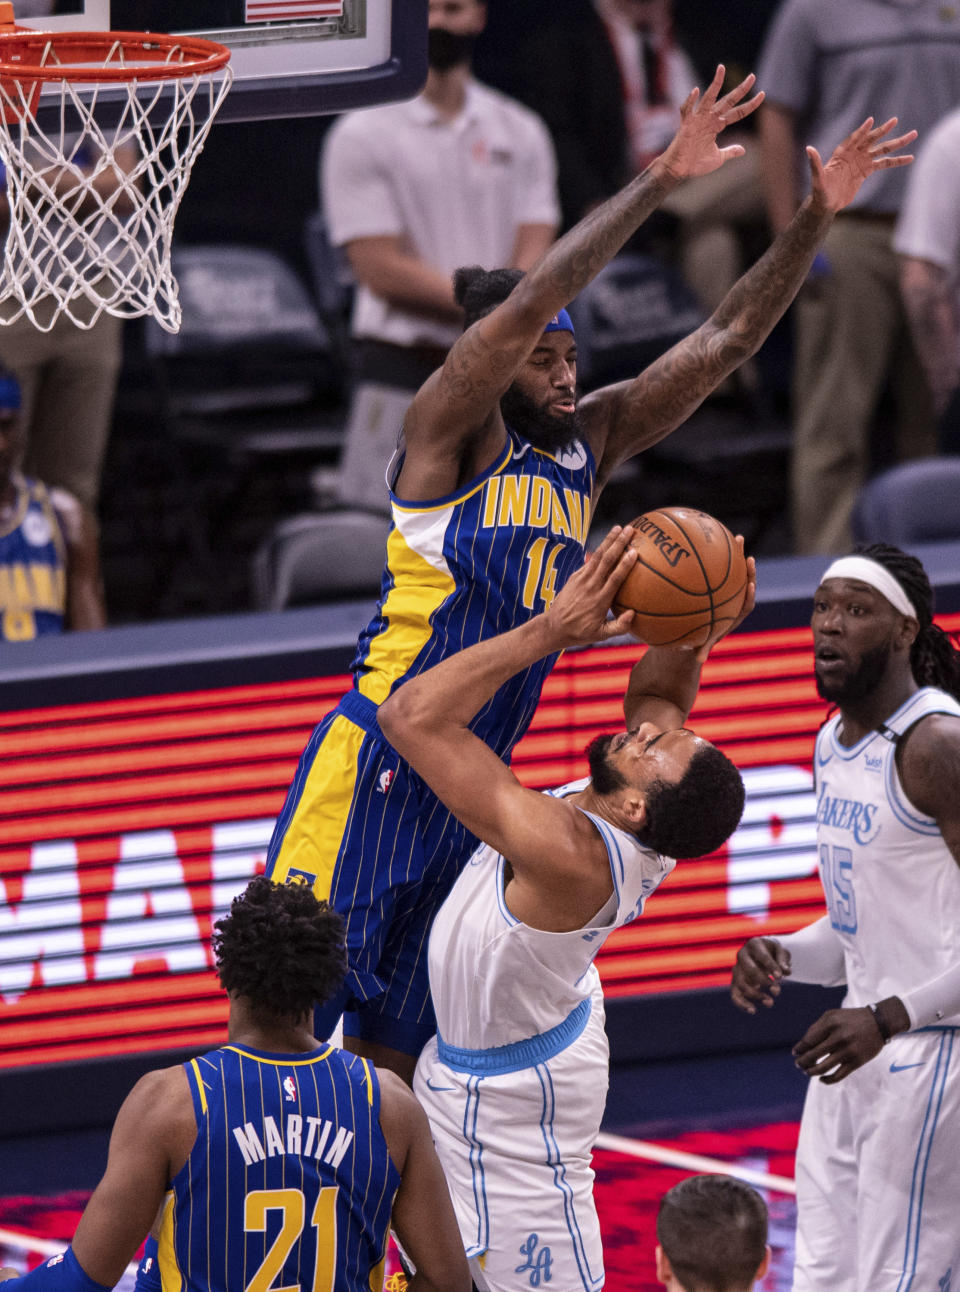 Indiana Pacers forward JaKarr Sampson (14) goes up over the top of Los Angeles Lakers guard Talen Horton-Tucker (5) to block a shot during the second half of an NBA basketball game in Indianapolis, Saturday, May 15, 2021. (AP Photo/Doug McSchooler)